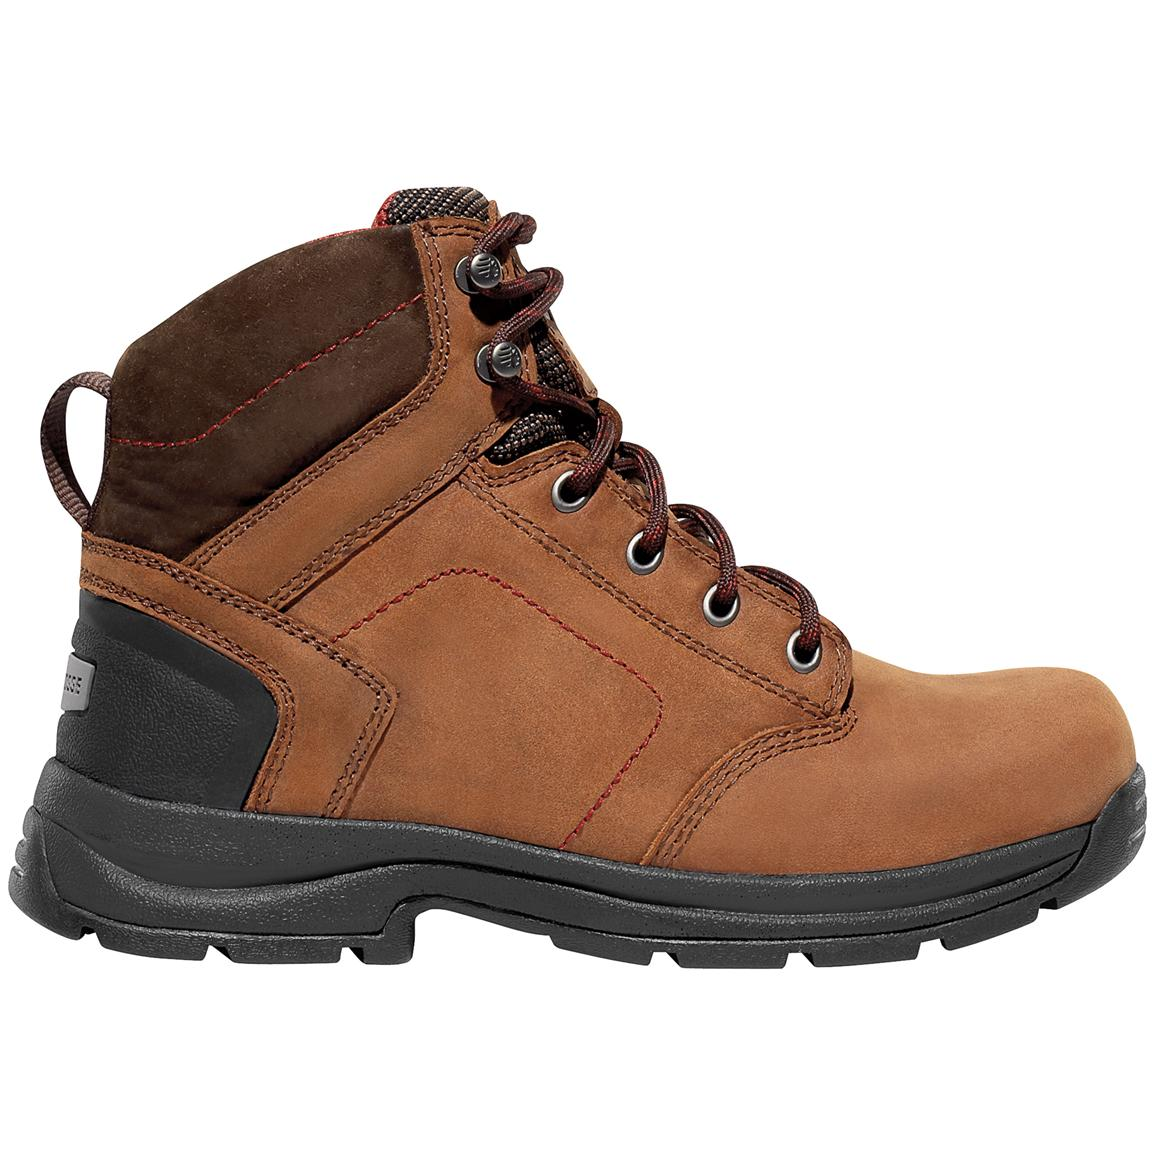 Women's LaCrosse® 5 inch Laurelwood Waterproof Alloy Toe Work Boots